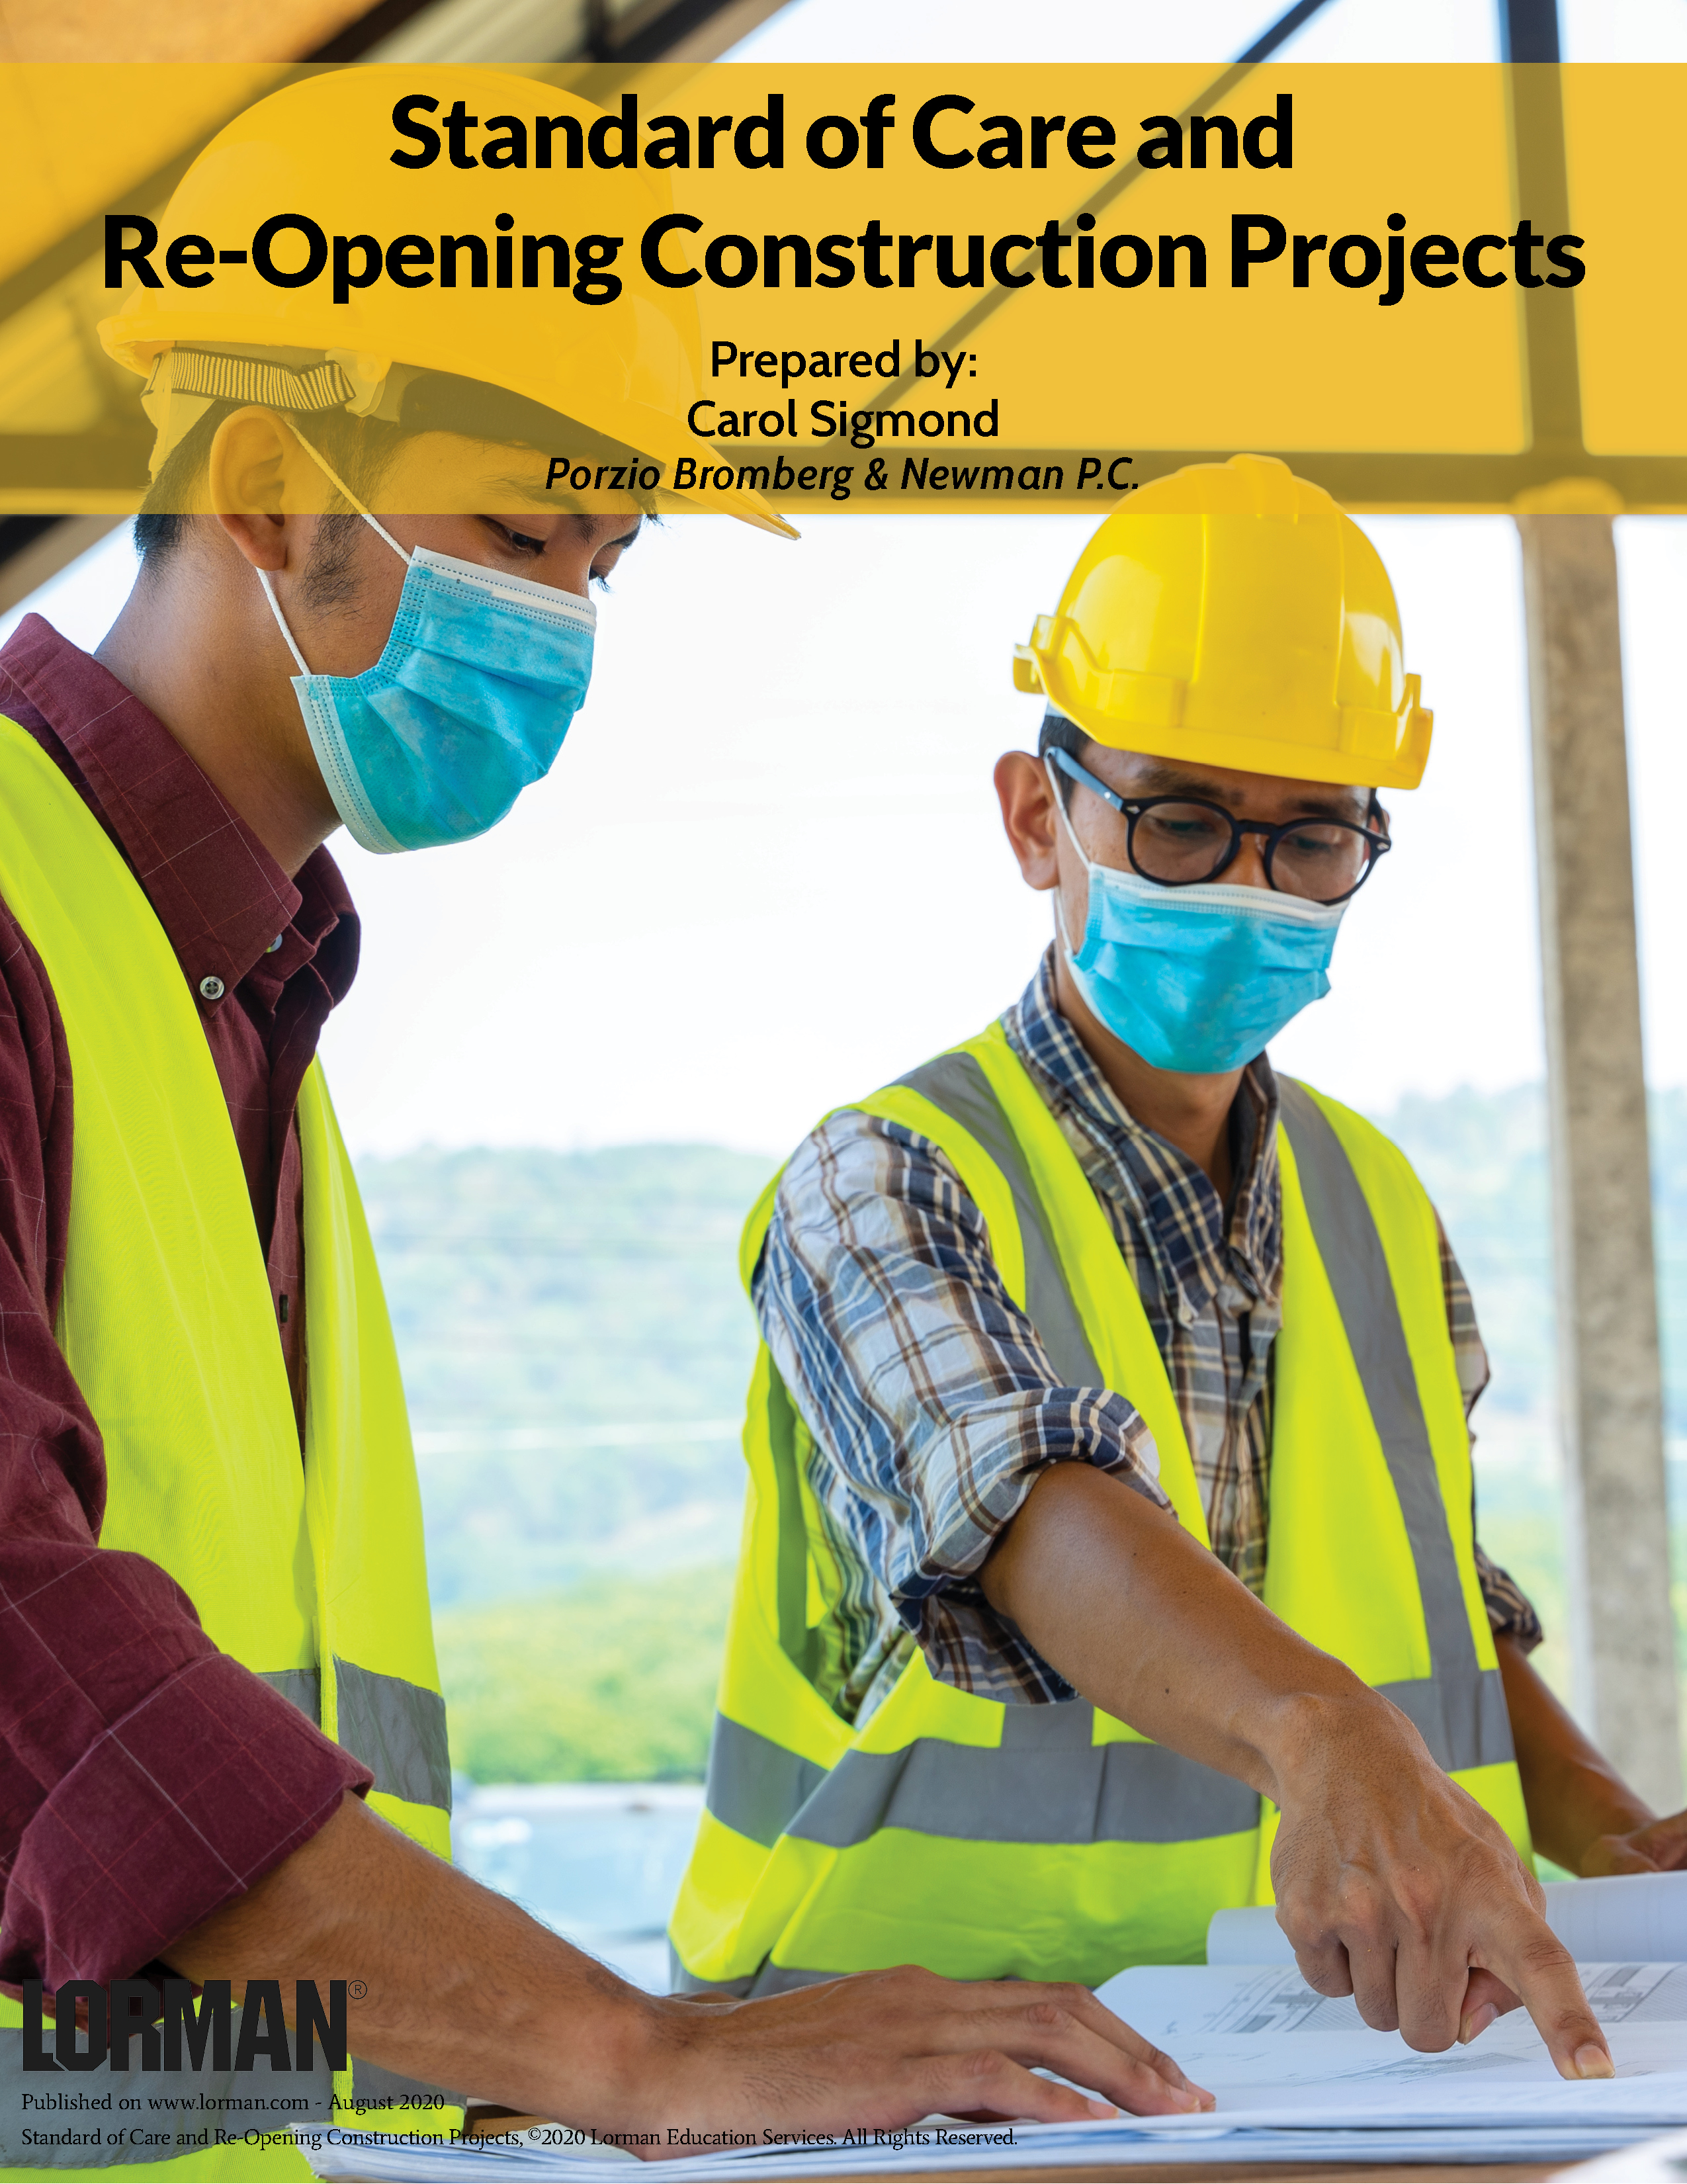 Standard of Care and Re-Opening Construction Projects